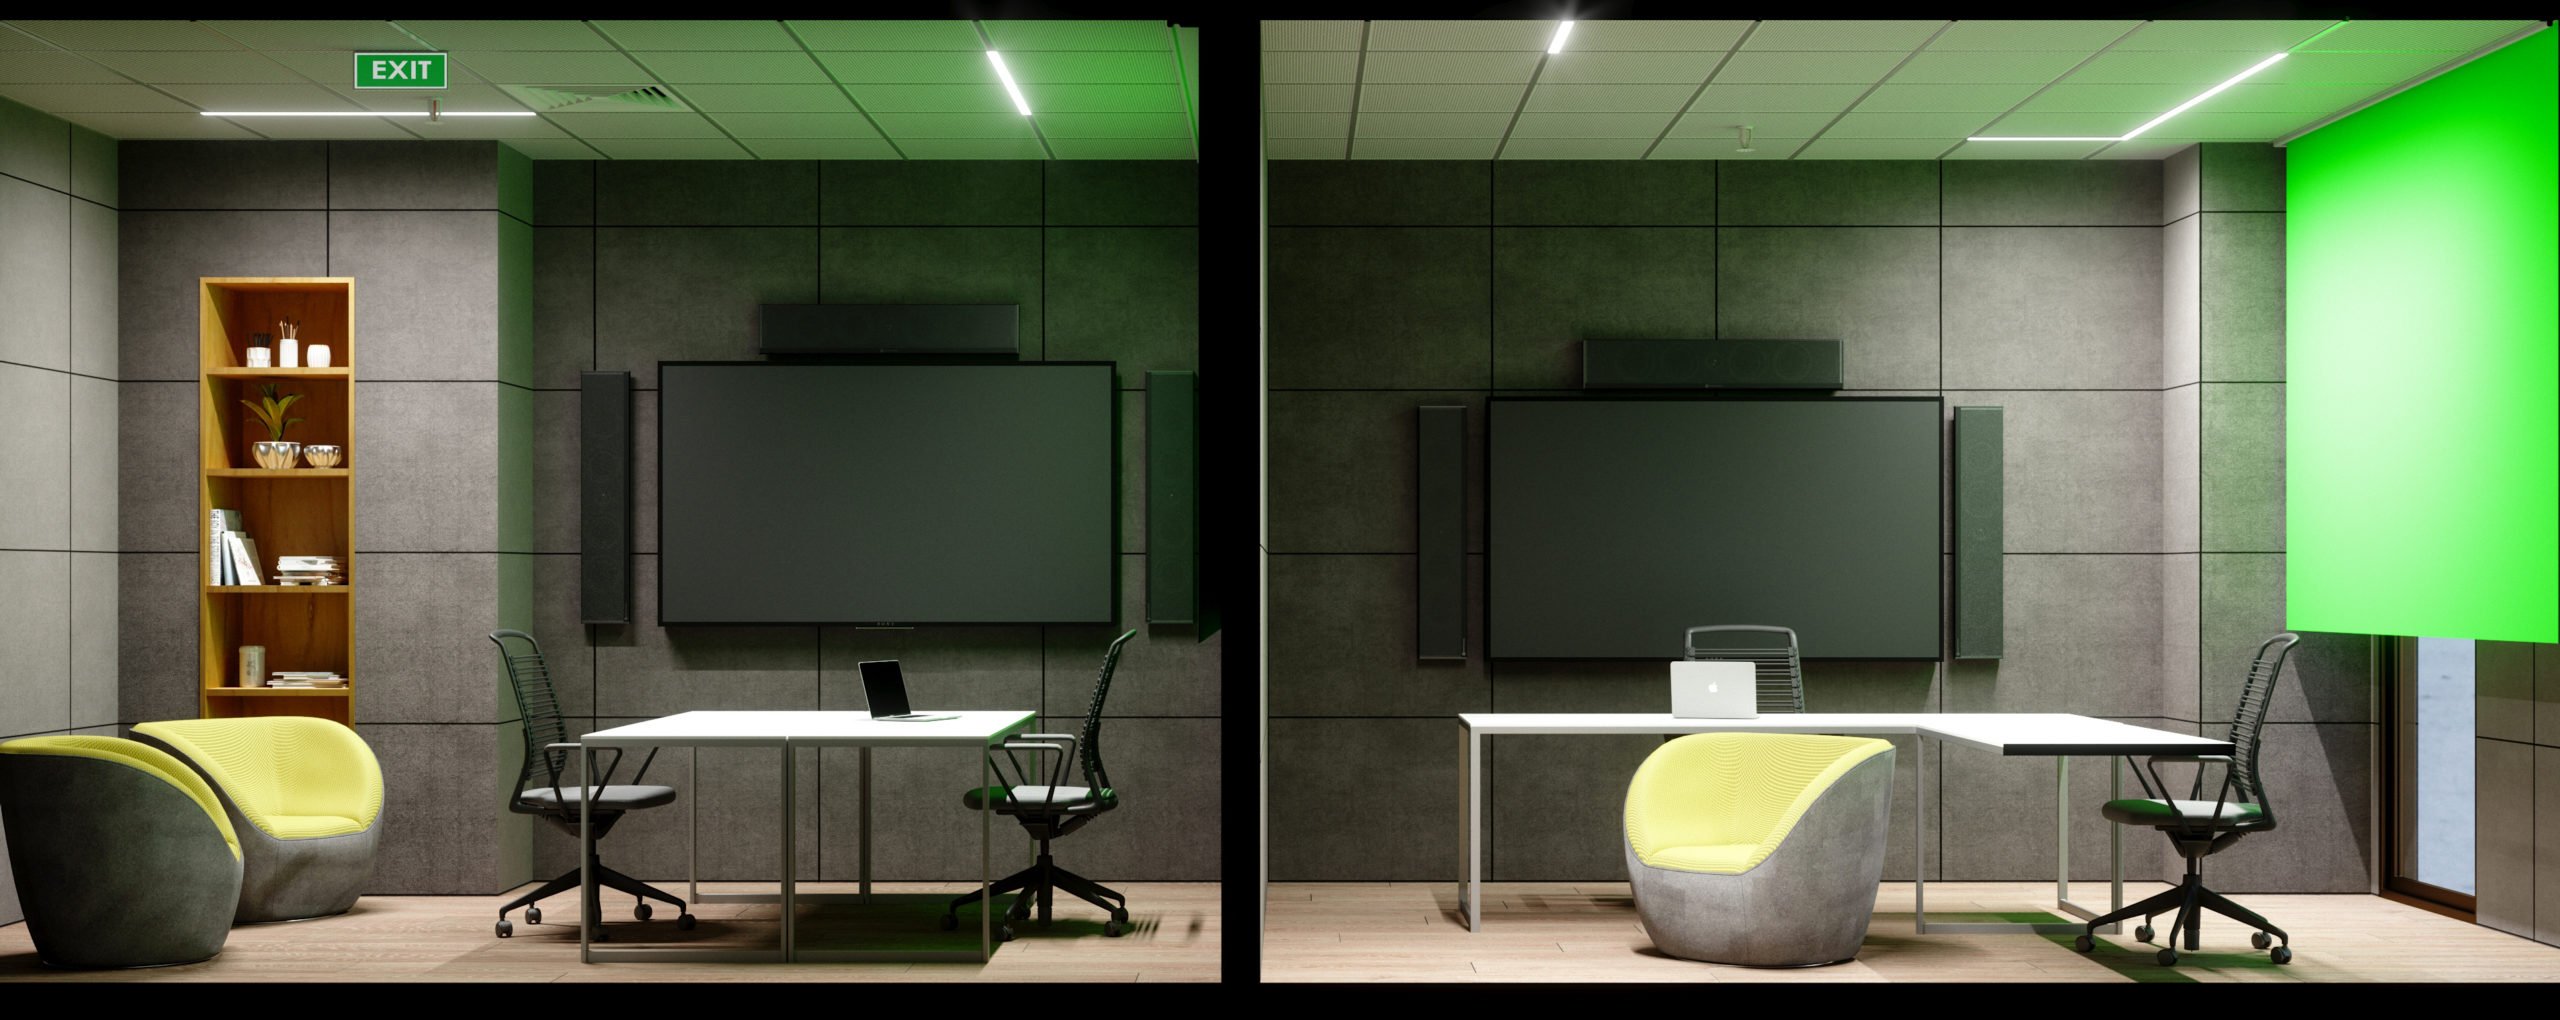 meeting rooms with green screens, tvs for presentations, seating, and desks